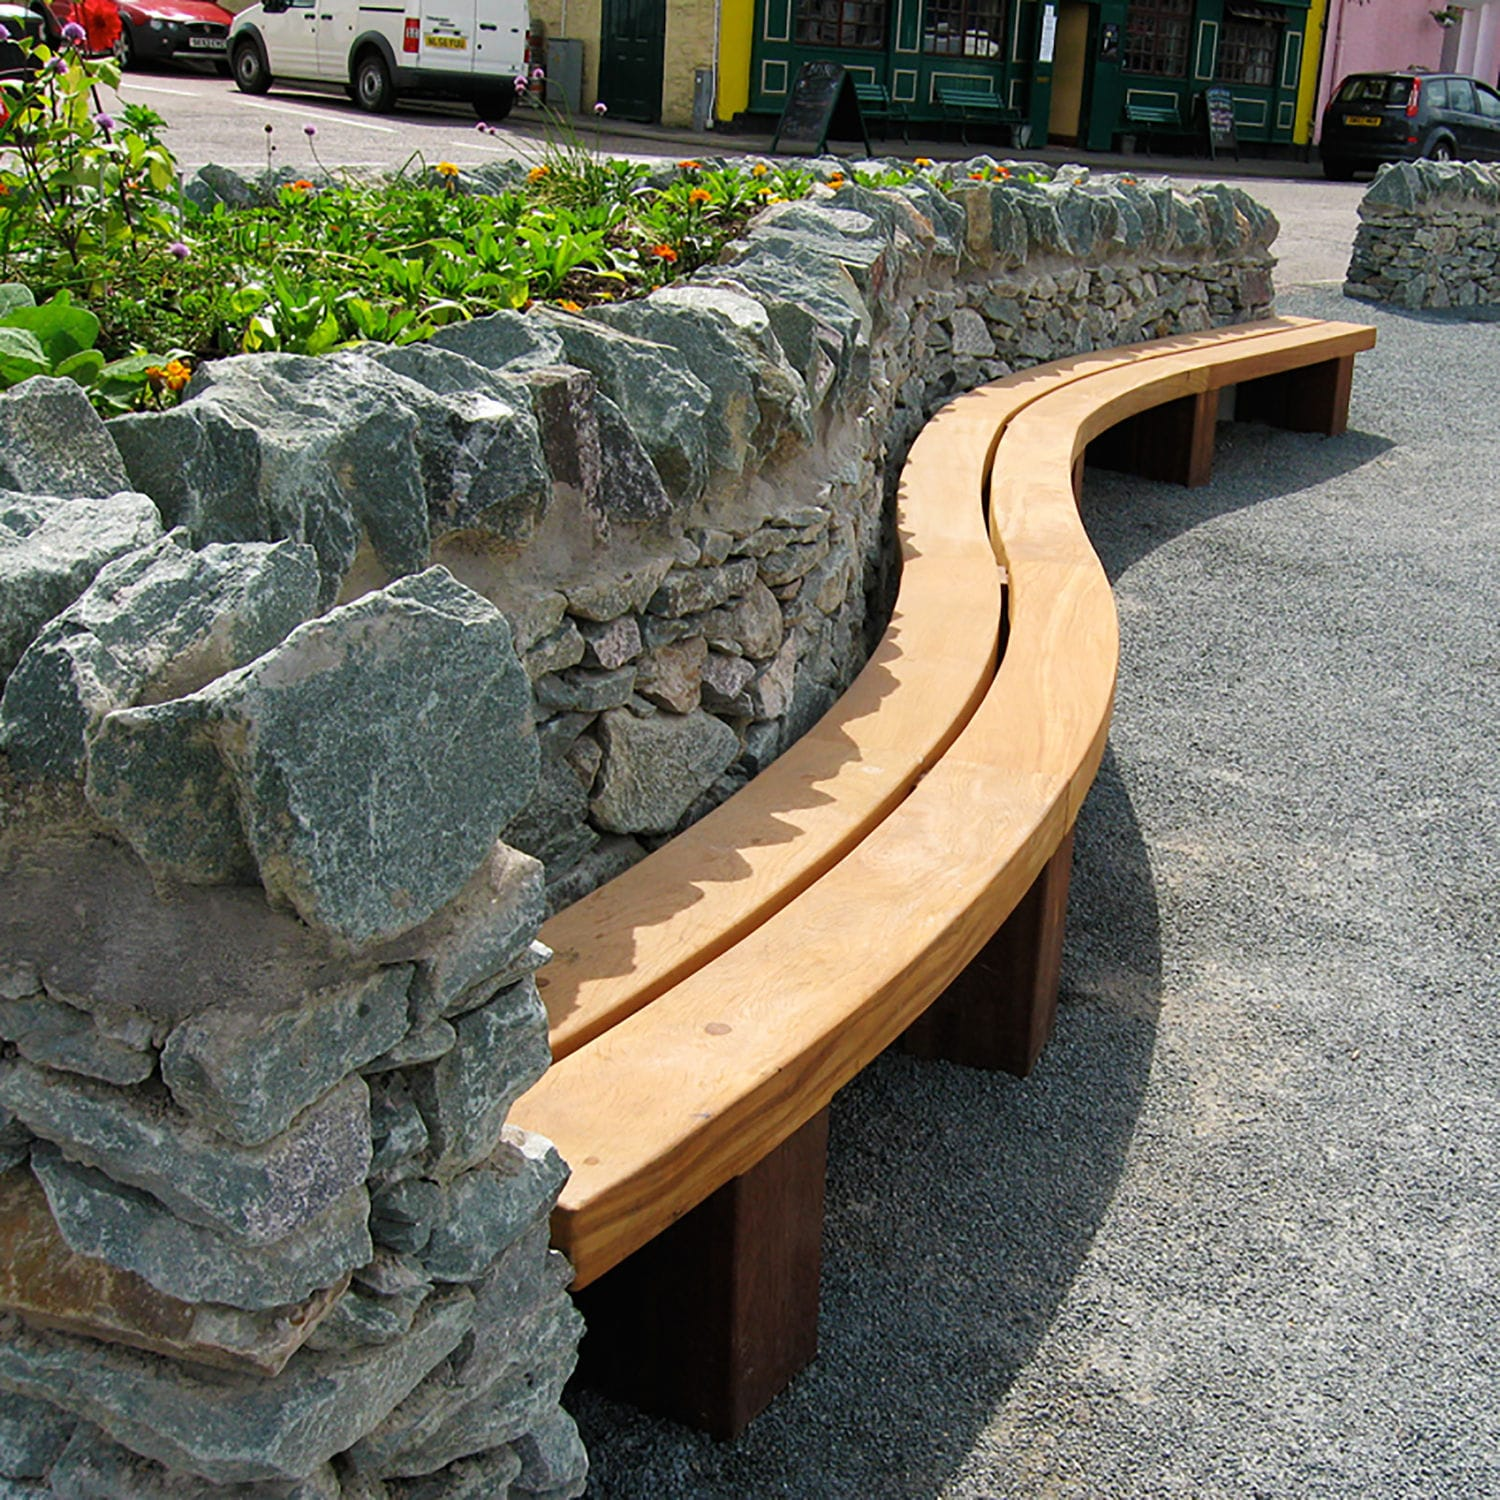 Miraculous Public Bench Contemporary Wooden Wall Mounted Type 4 Onthecornerstone Fun Painted Chair Ideas Images Onthecornerstoneorg